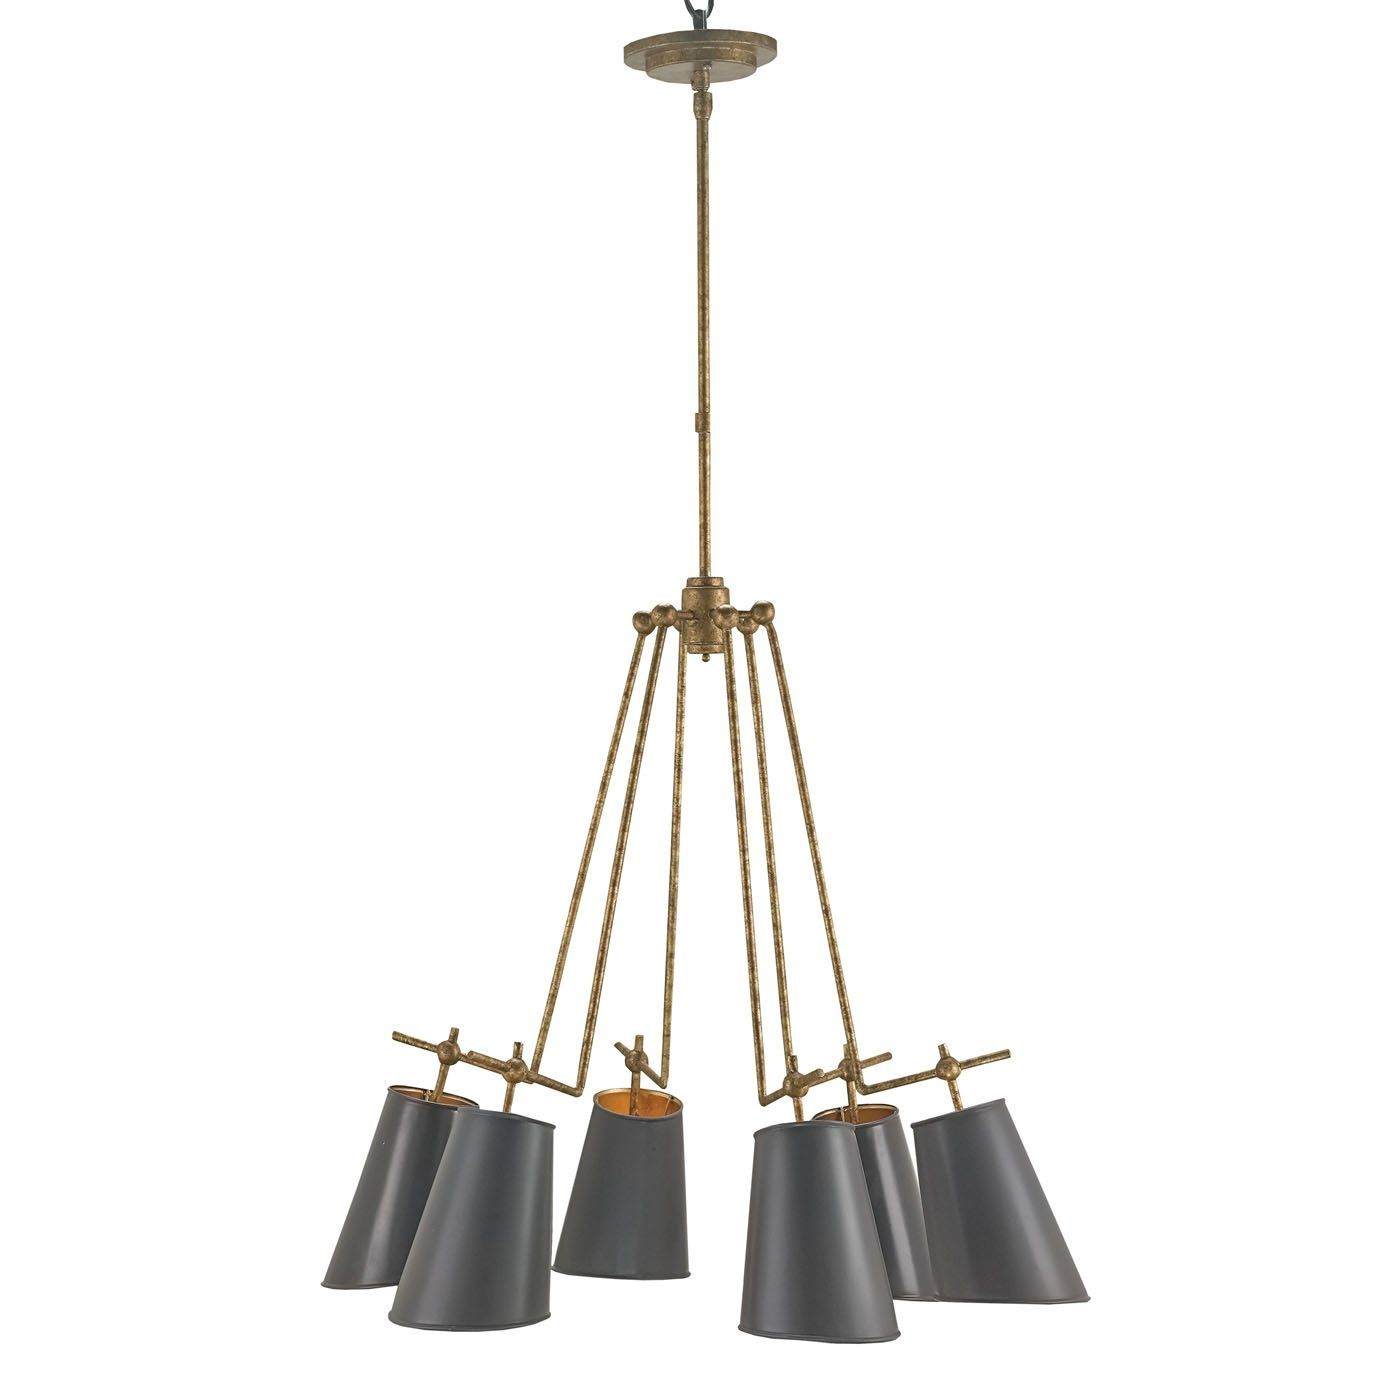 Shop currey company currey company 9503 jean louis 6 light currey company 9503 jean louis chandelier decor sale deals finishold brass shademarbella black light cand f incand jean louis chandelier wrought aloadofball Choice Image